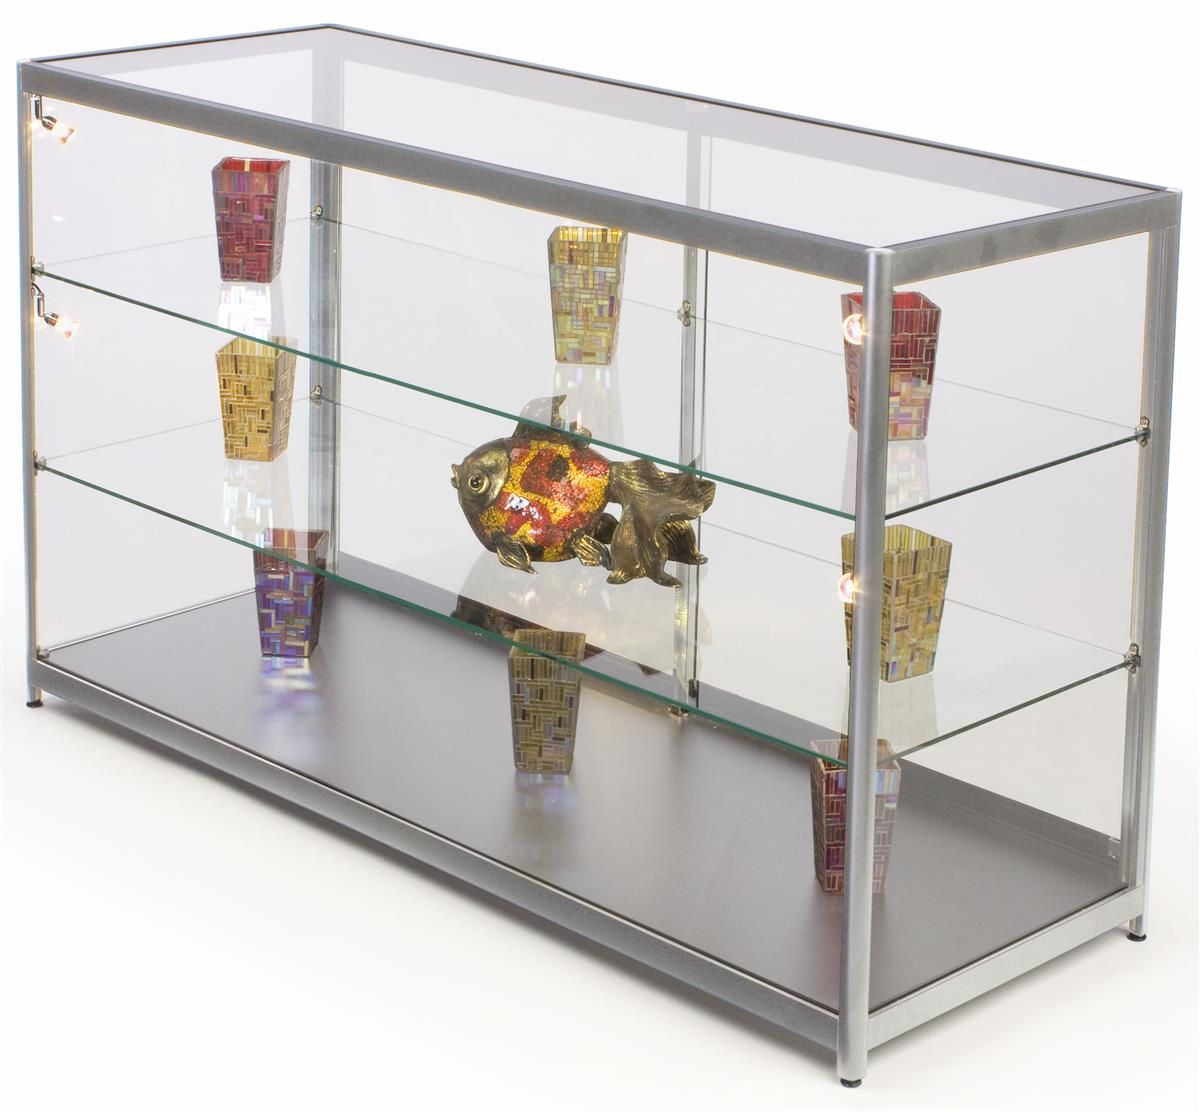 72 Retail Display Counter W Track Lights Sliding Doors Ships Assembled Silver Retail Display Cases Glass Shelves Floating Glass Shelves